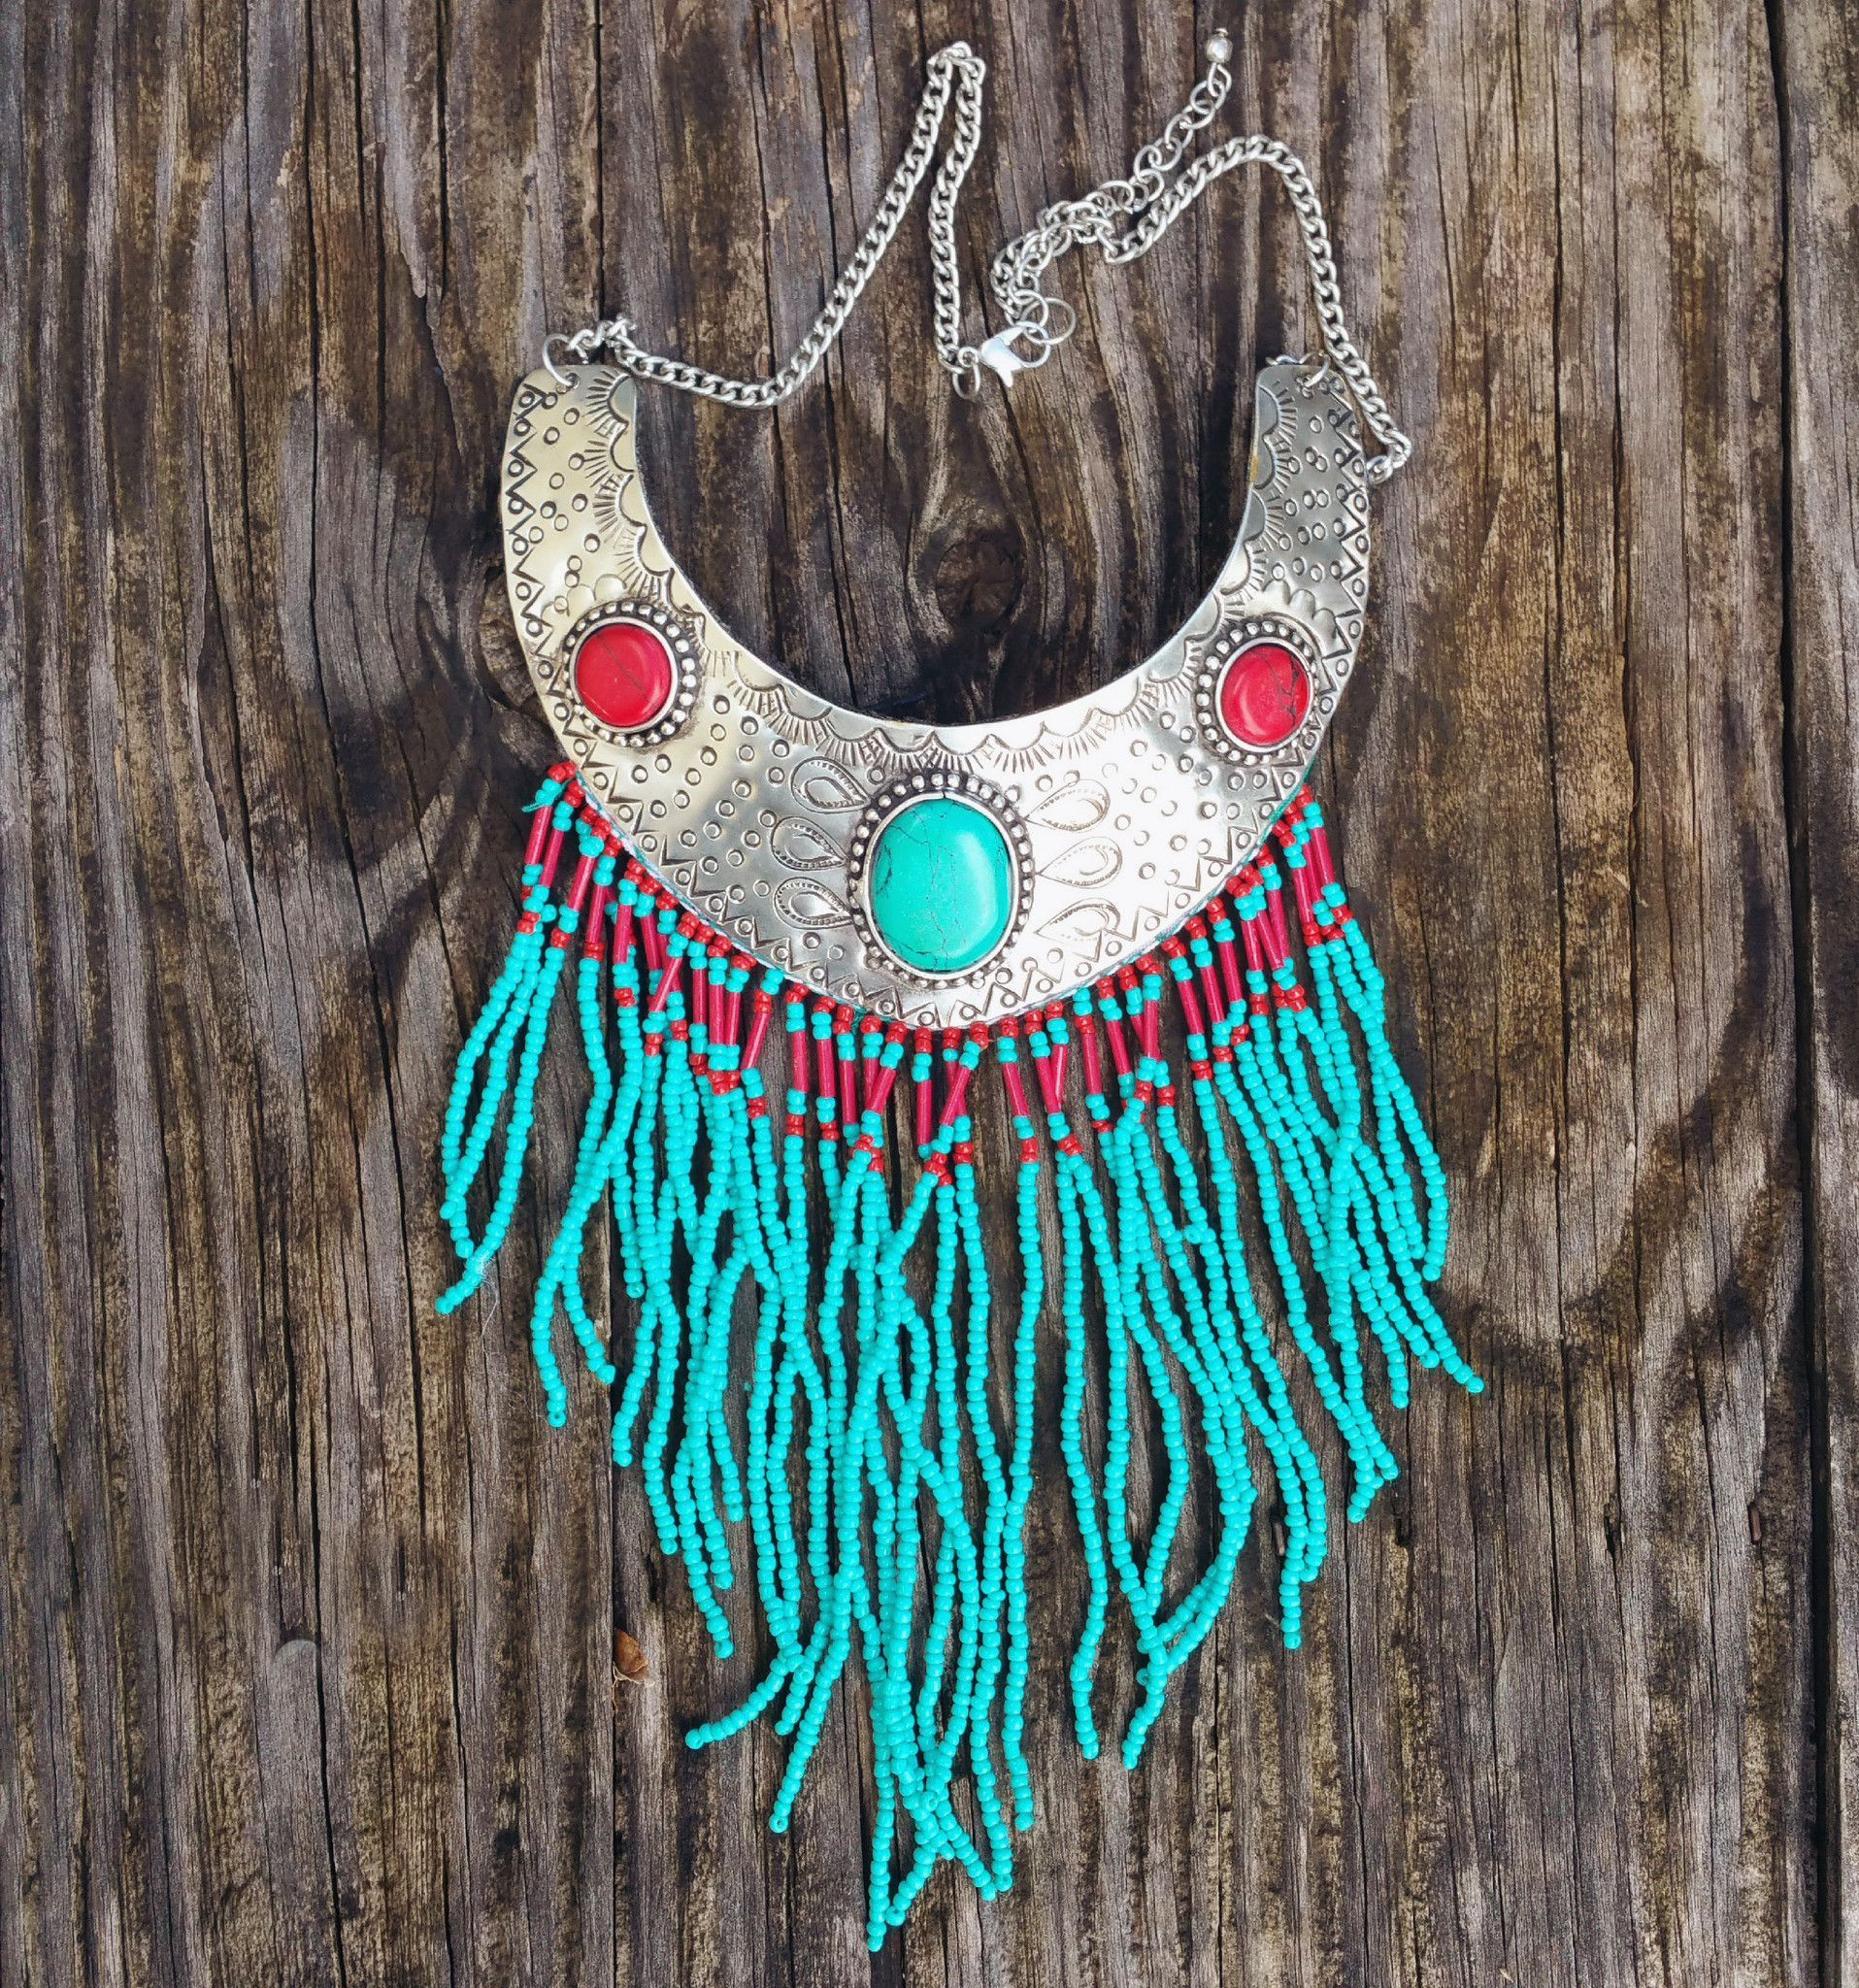 The Wild Child Necklace